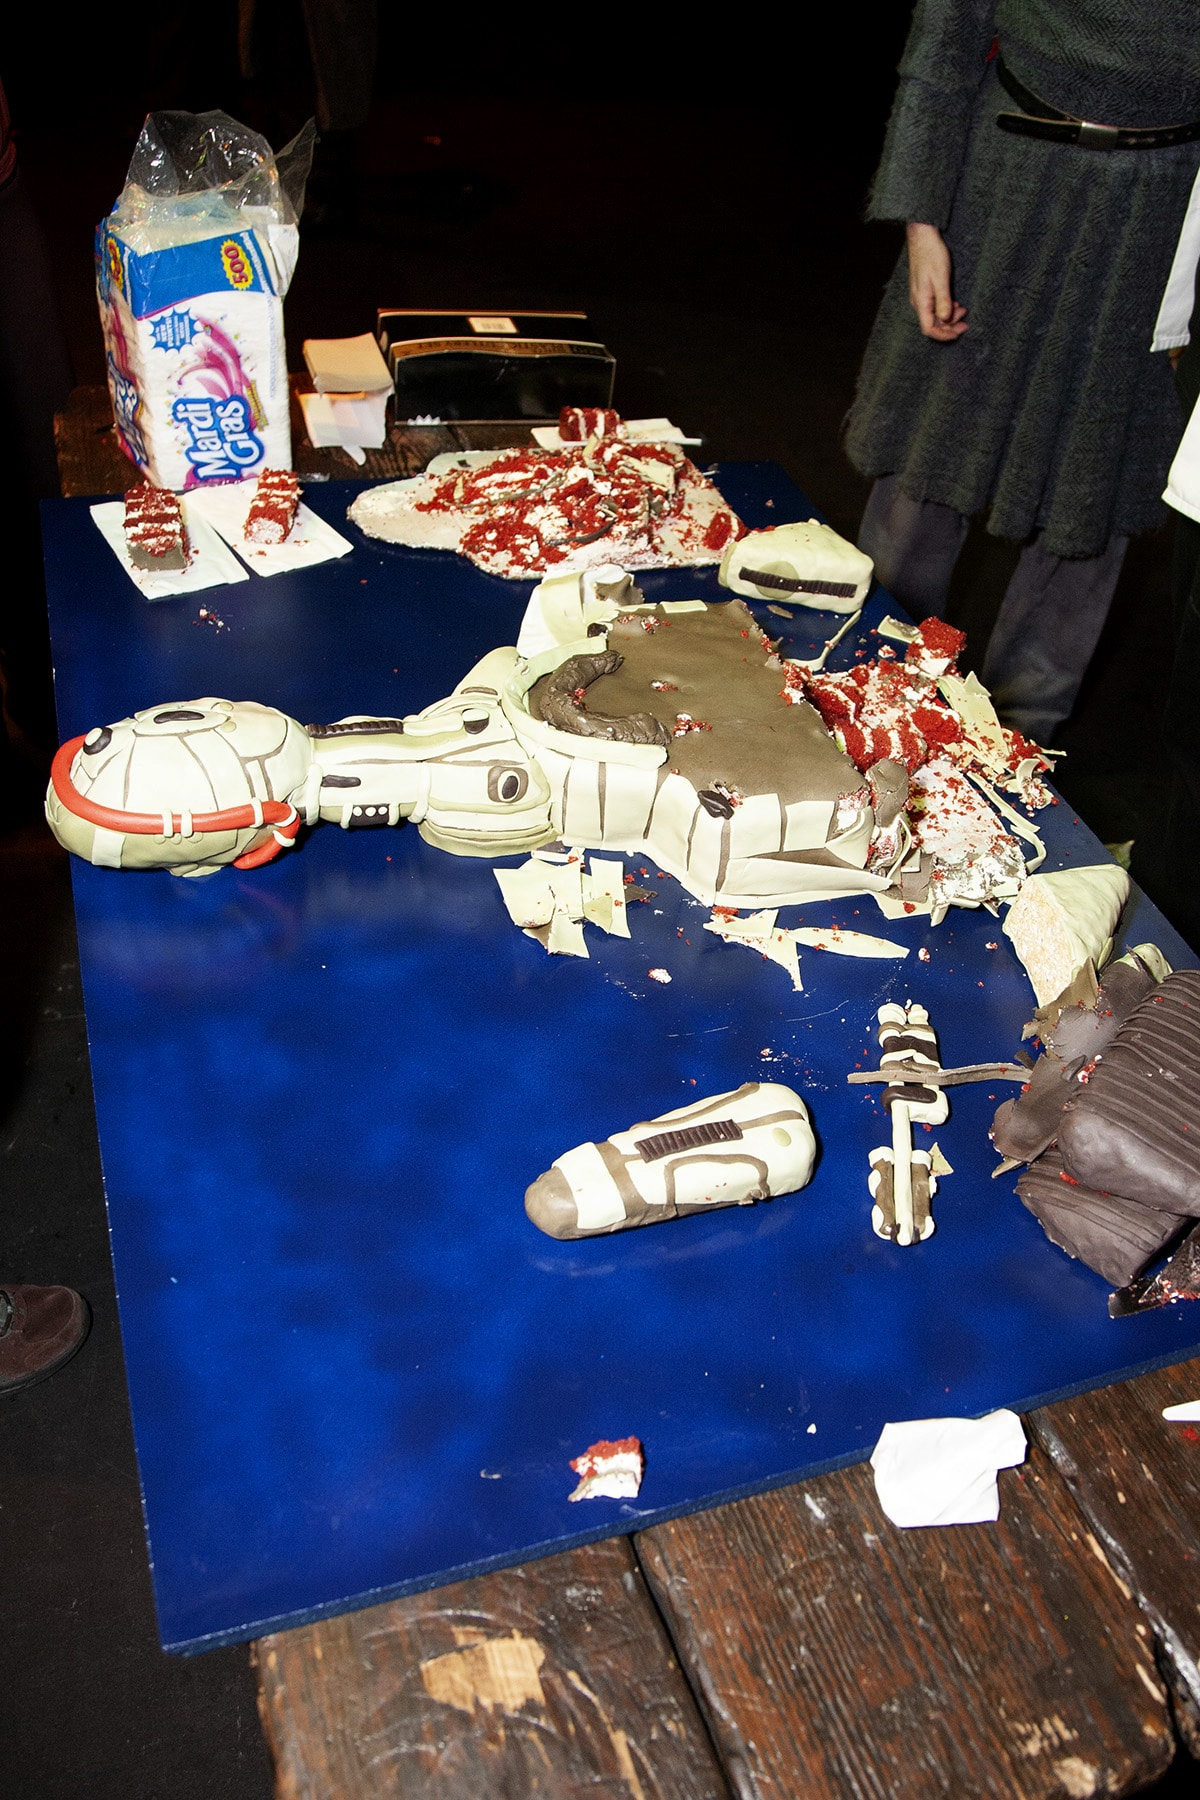 The remains of the Klingon cake, on a long table.